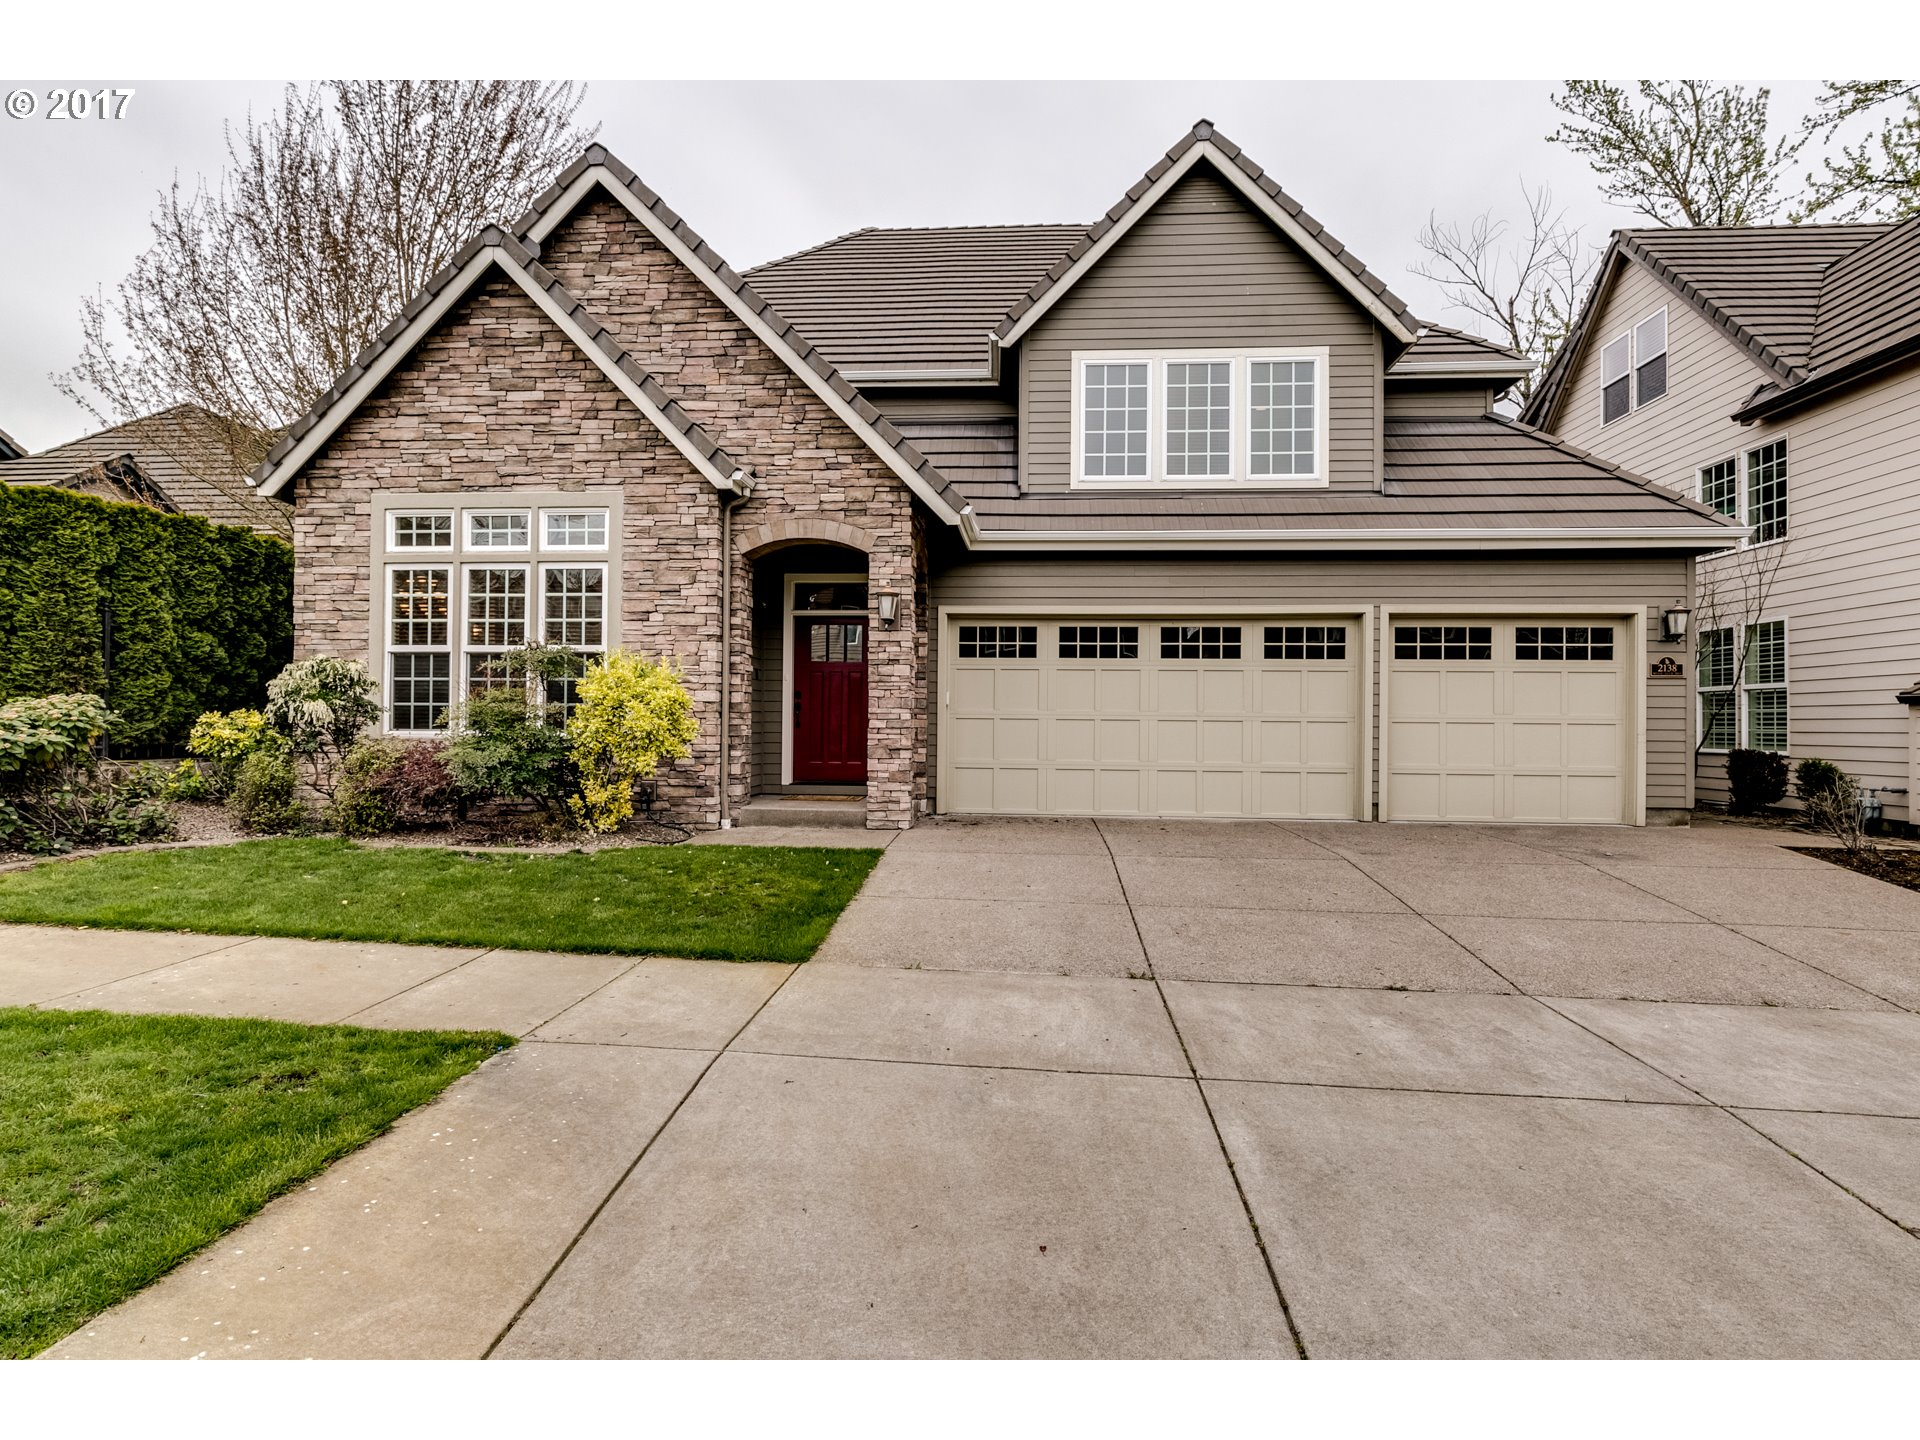 2138 WOOD DUCK WAY, Eugene, OR 97401